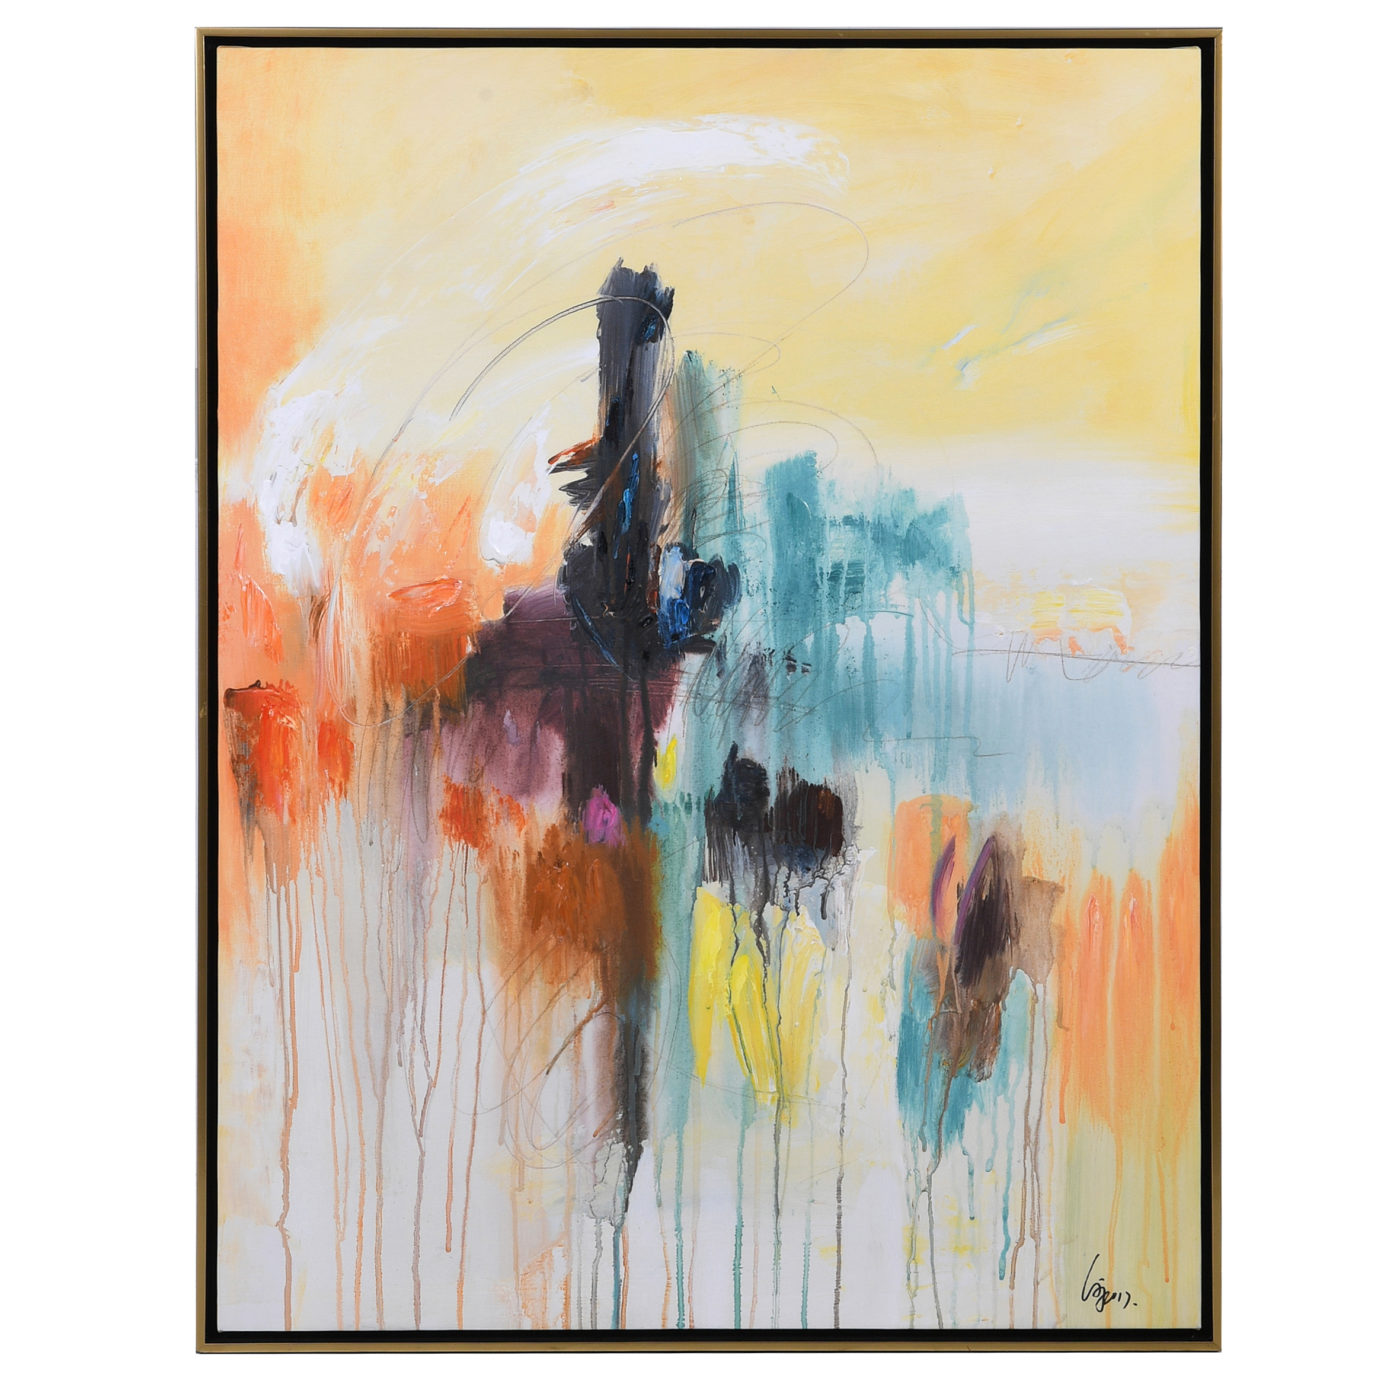 yellow, blue, orange abstract wall art in frame